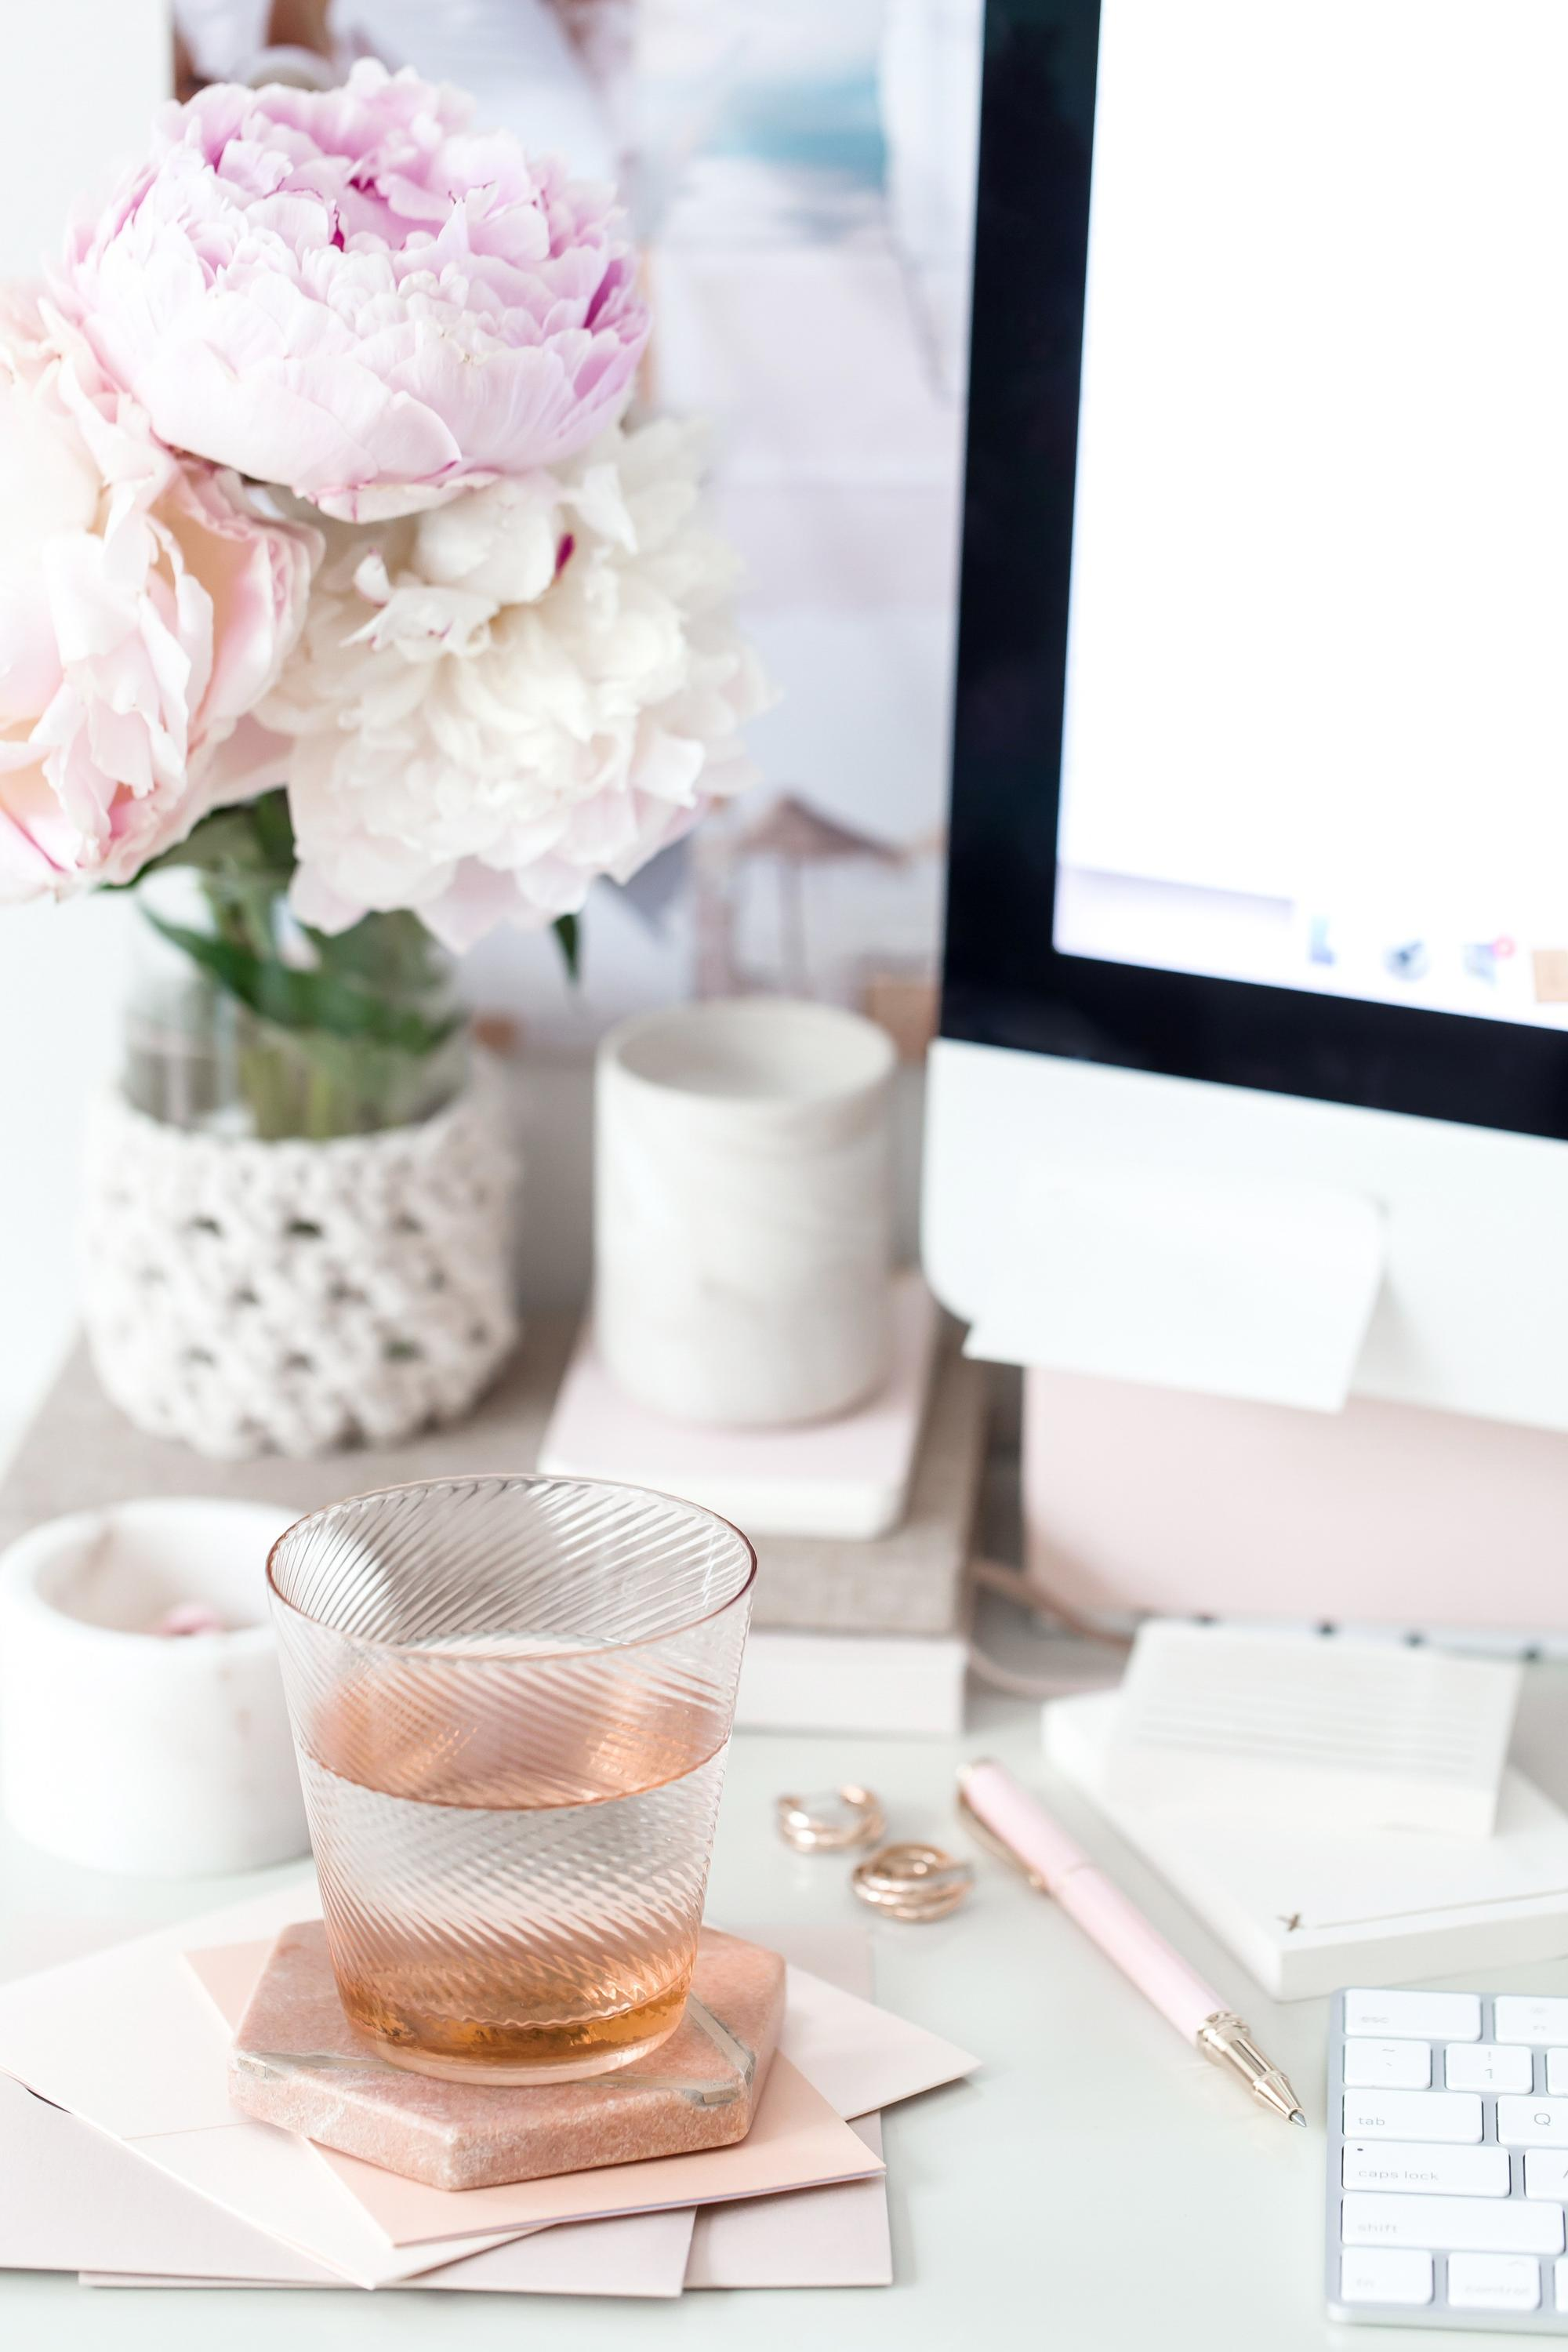 ARE YOU STRESSING OVER EVERY LITTLE TO-DO AND HOW-TO?